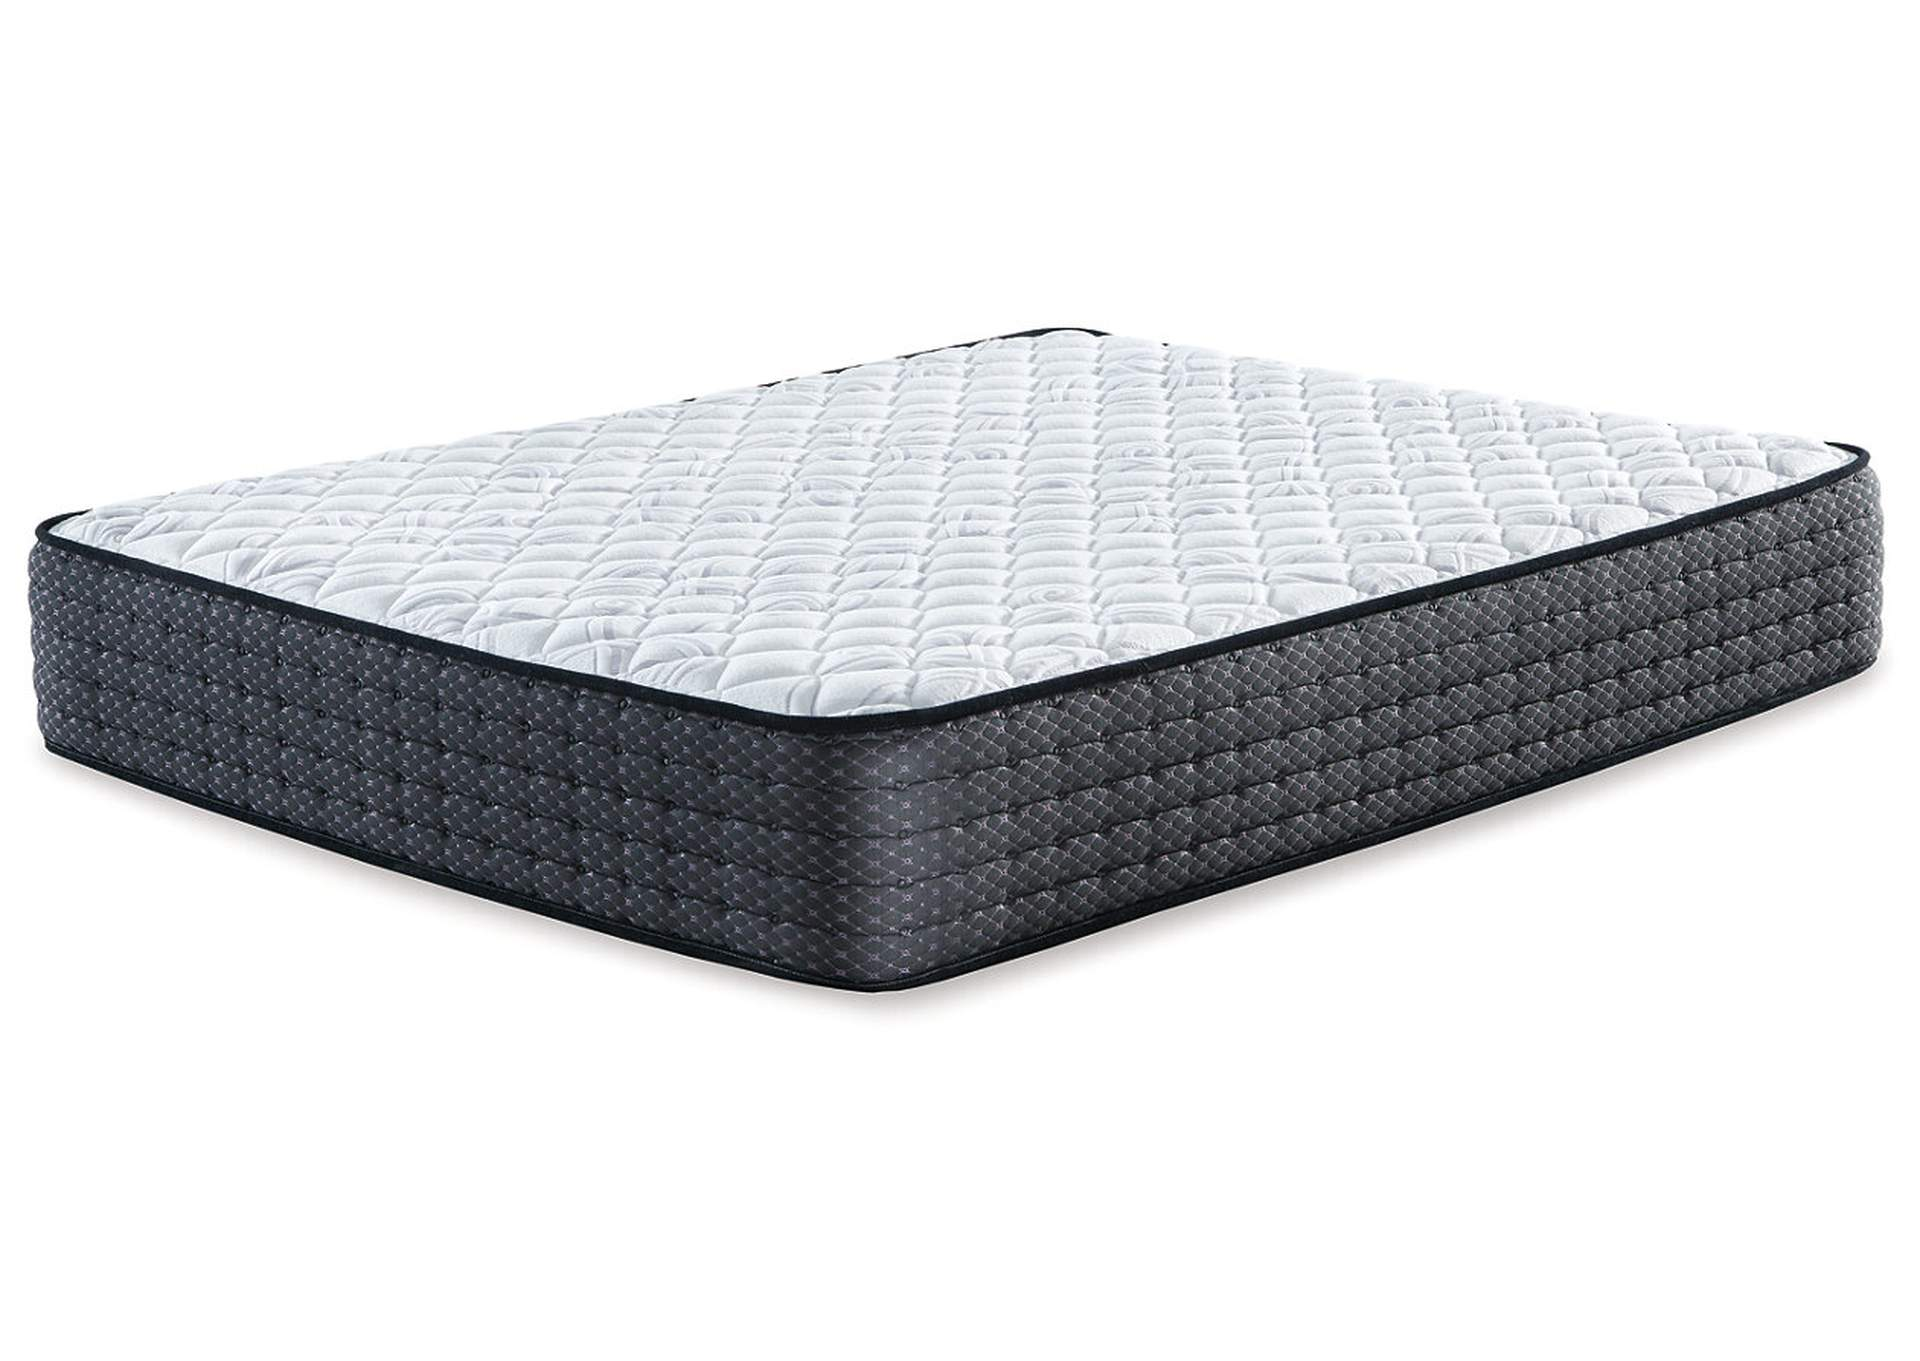 Limited Edition White Firm Queen Mattress,Direct To Consumer Express